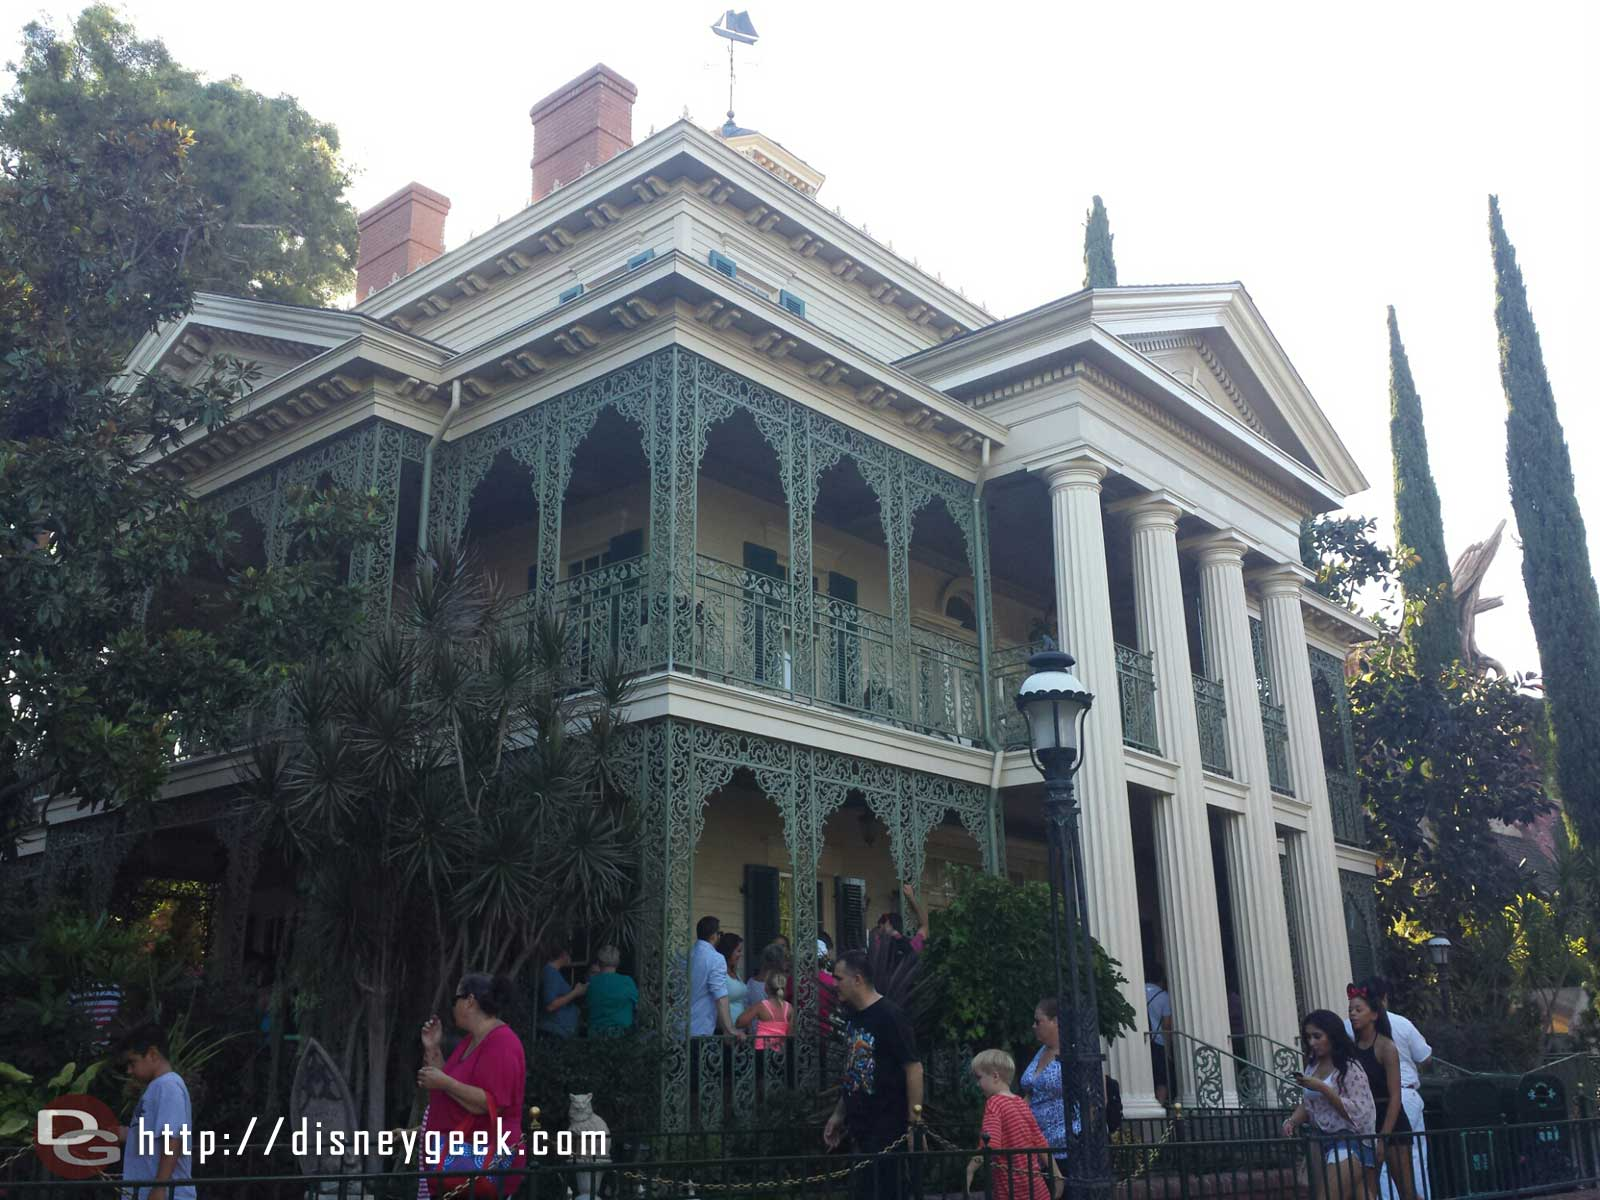 Last Saturday the Haunted Mansion turned 45 #Disneyland